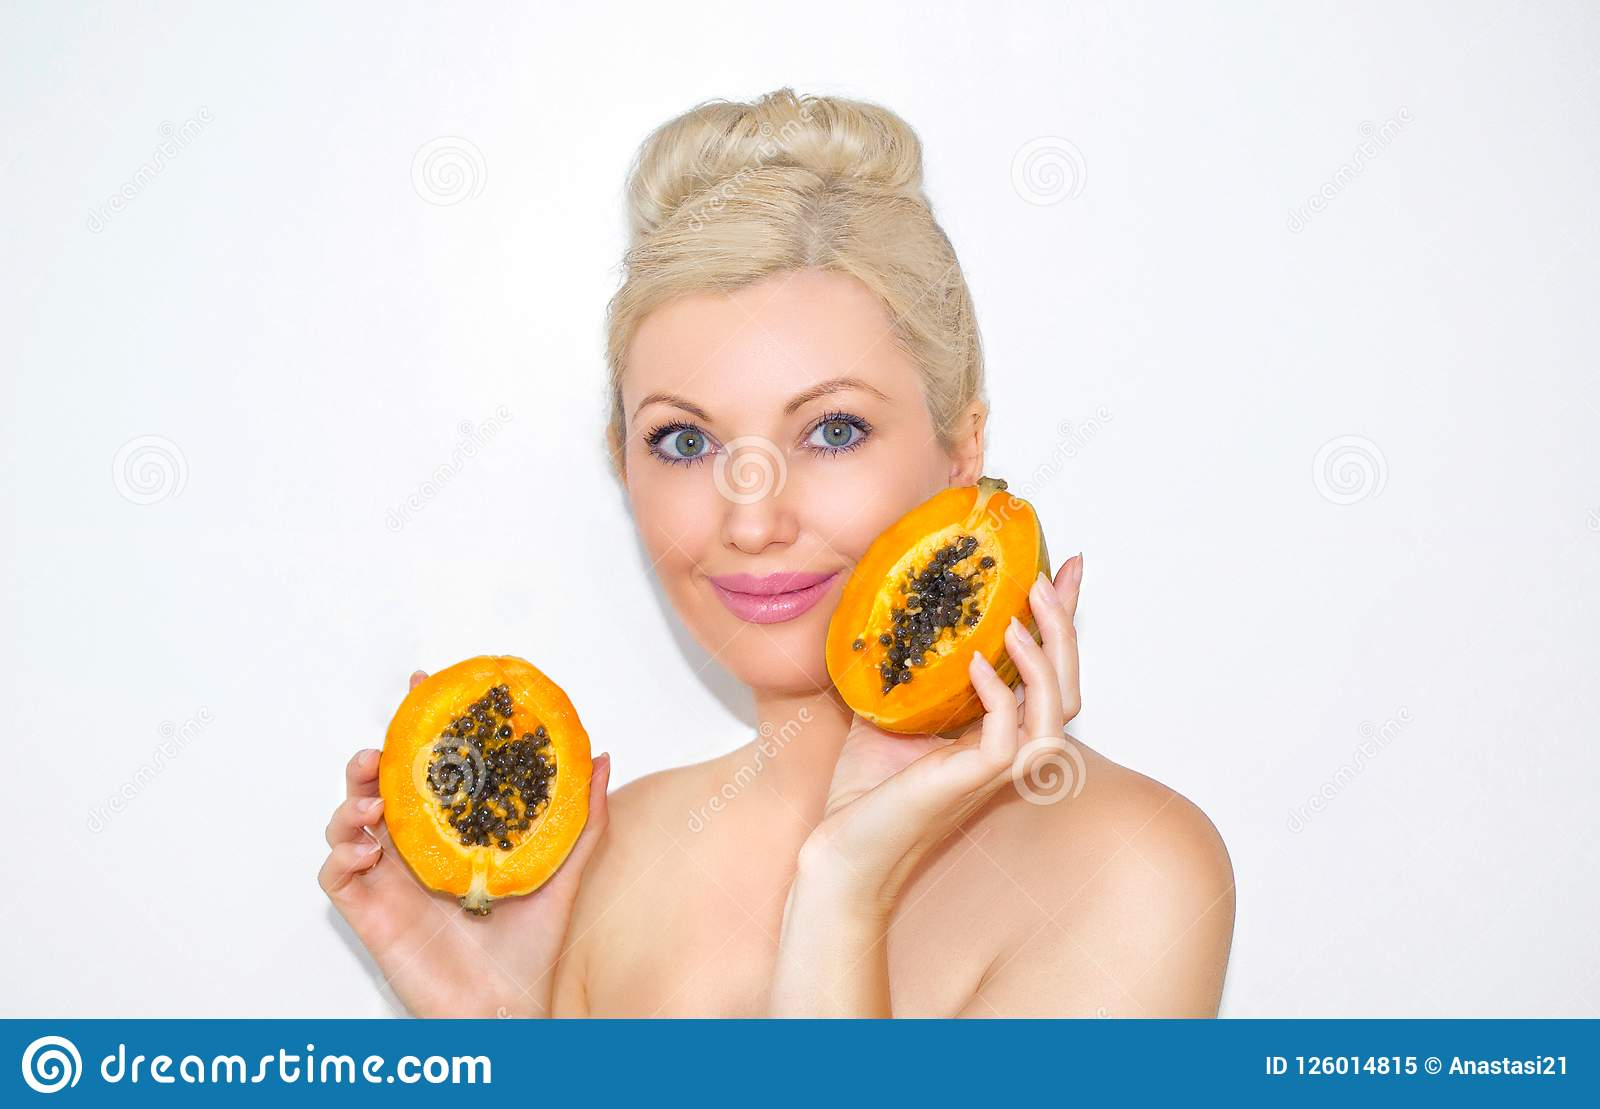 Beautiful young blond woman with papaya in hands. The concept of healthy skin and moisturizing. Advantages of fruit.